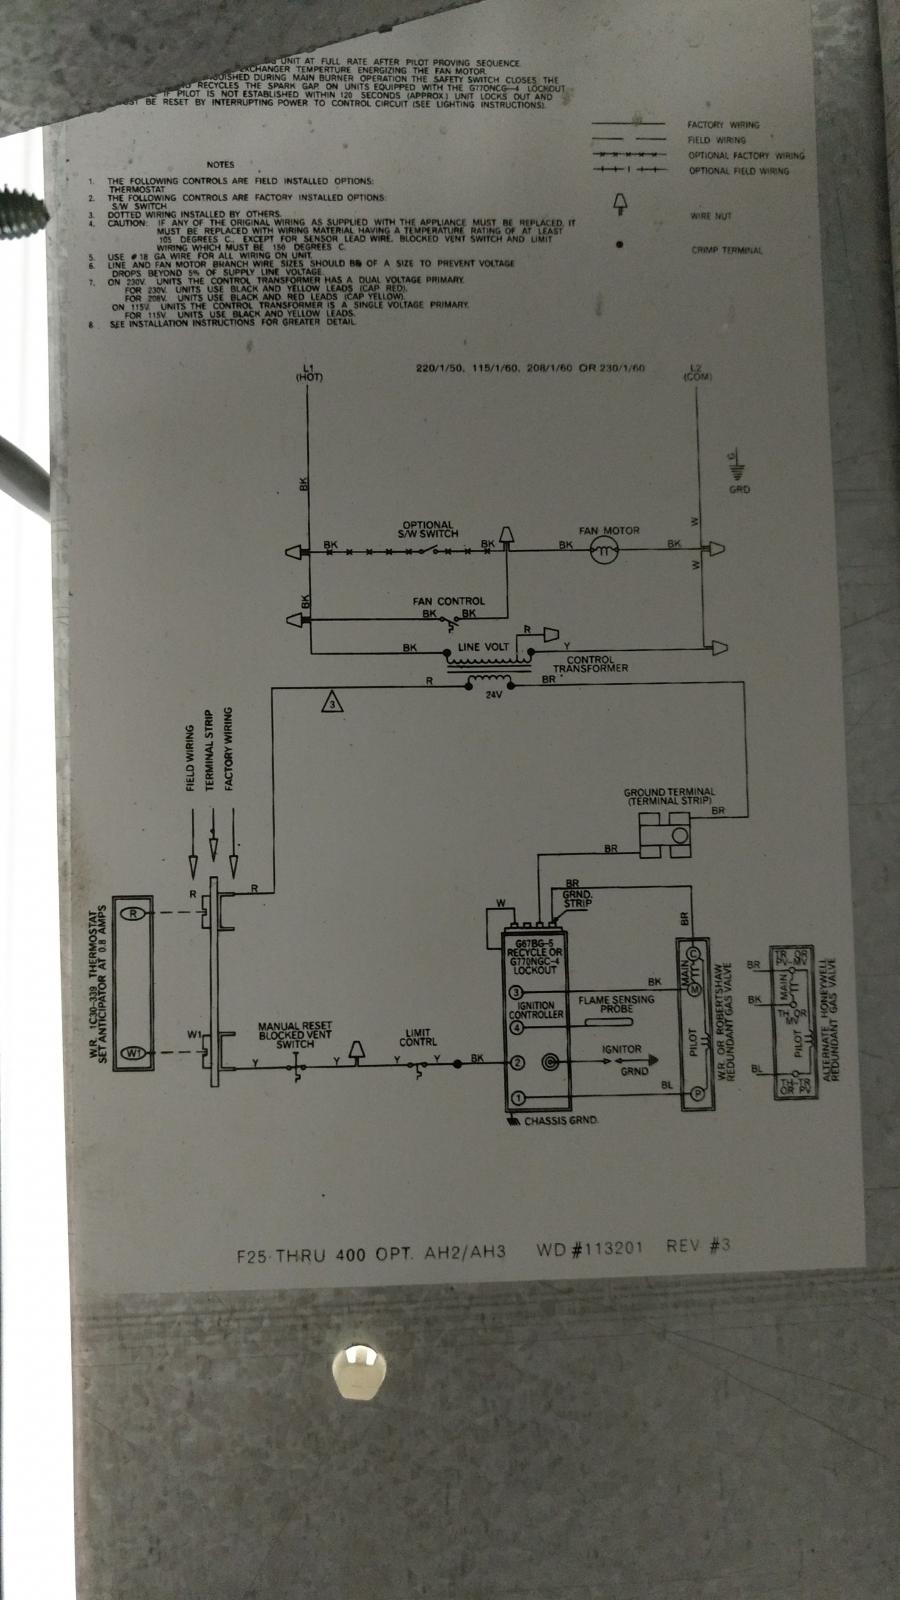 Wiring Diagram For Bodine Recessed Light Simple Guide About Iota Emergency Ballast Power Sentry Ps1400 Dodge Viper